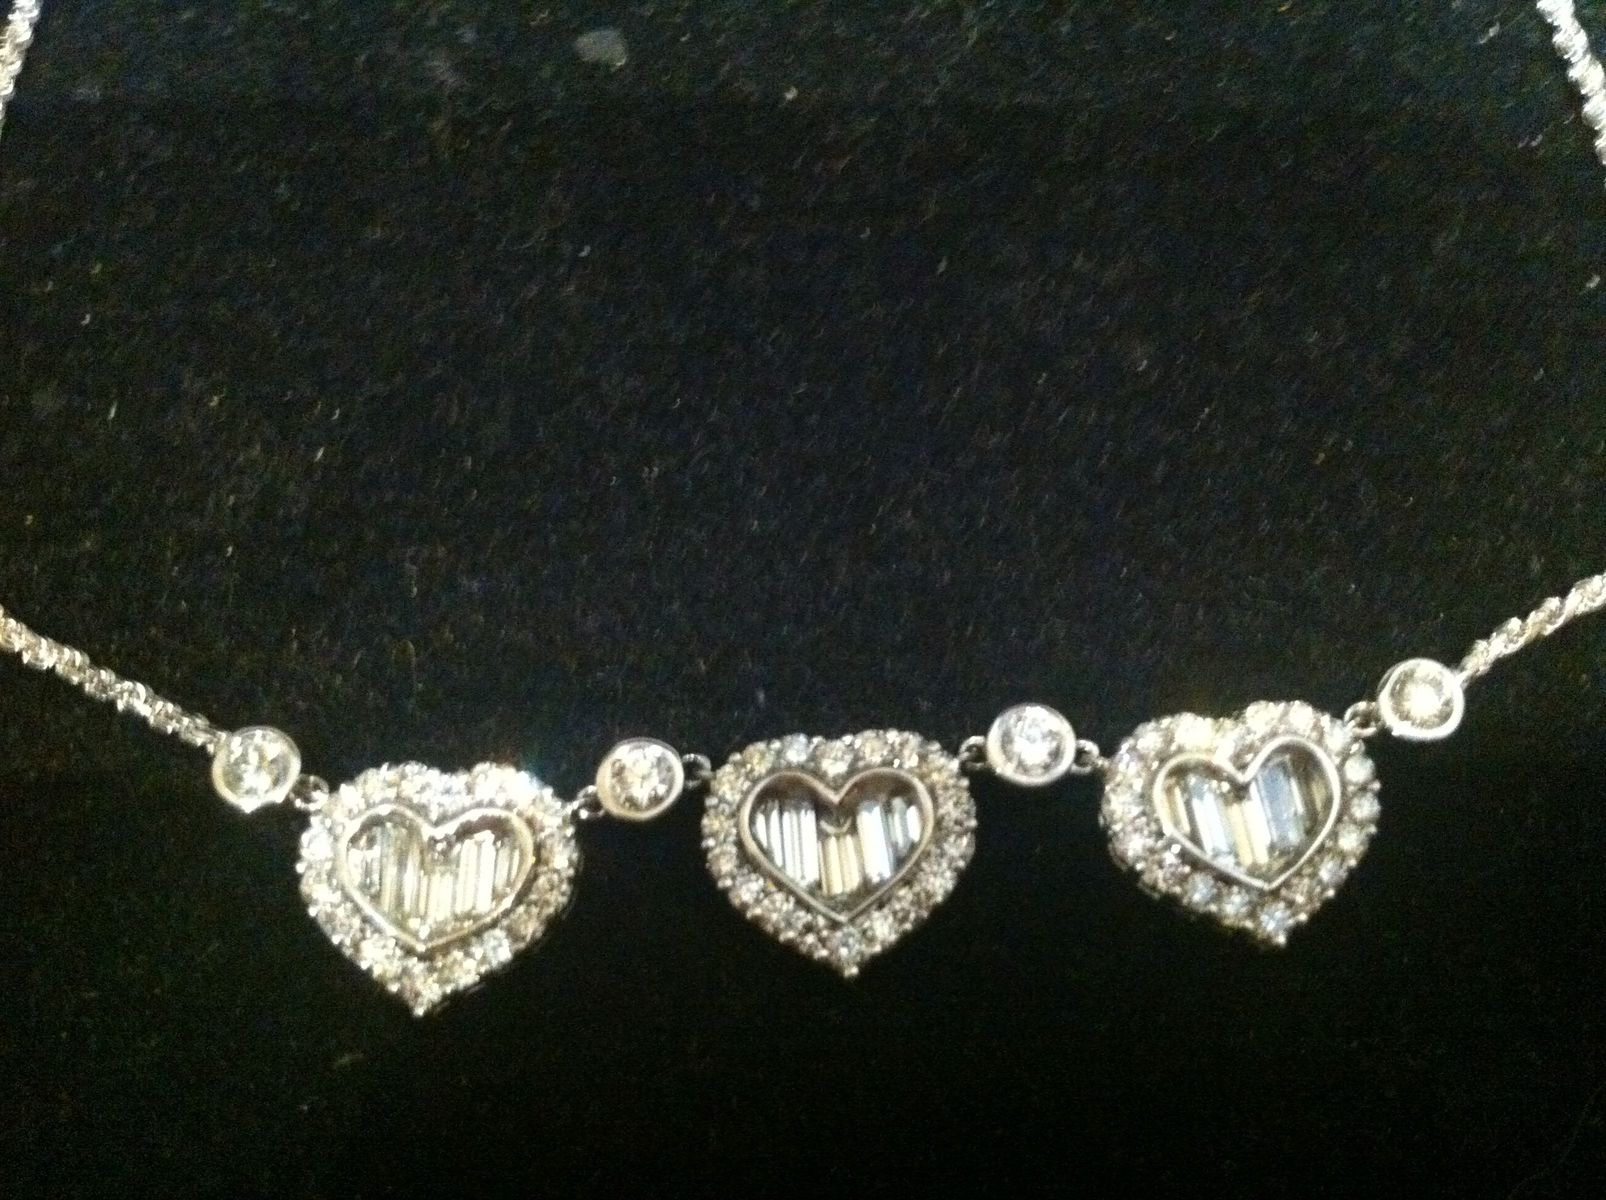 Buy a Hand Crafted Heart Shaped 14 Kt White Gold And Diamond